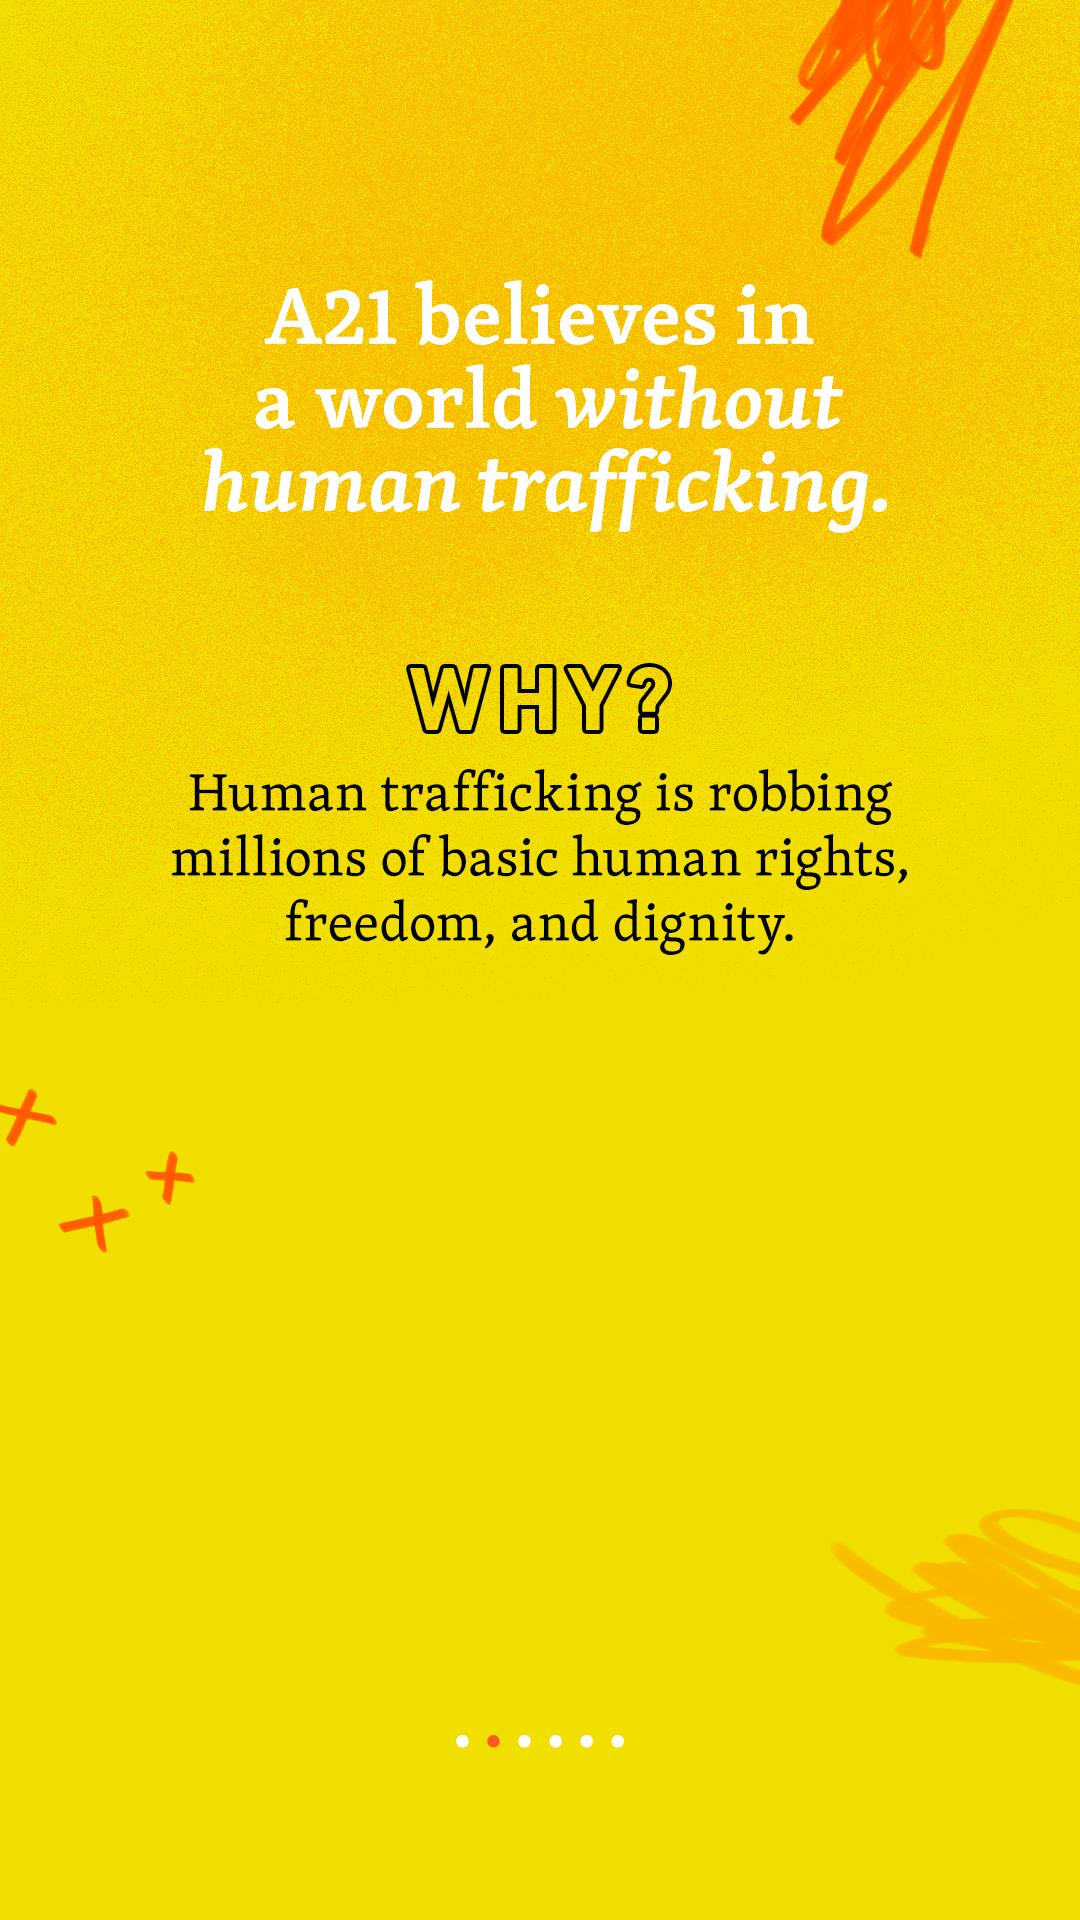 A21 believes in a world without trafficking. Why? Human trafficking is robbing millions of basic human rights, freedom, and dignity.